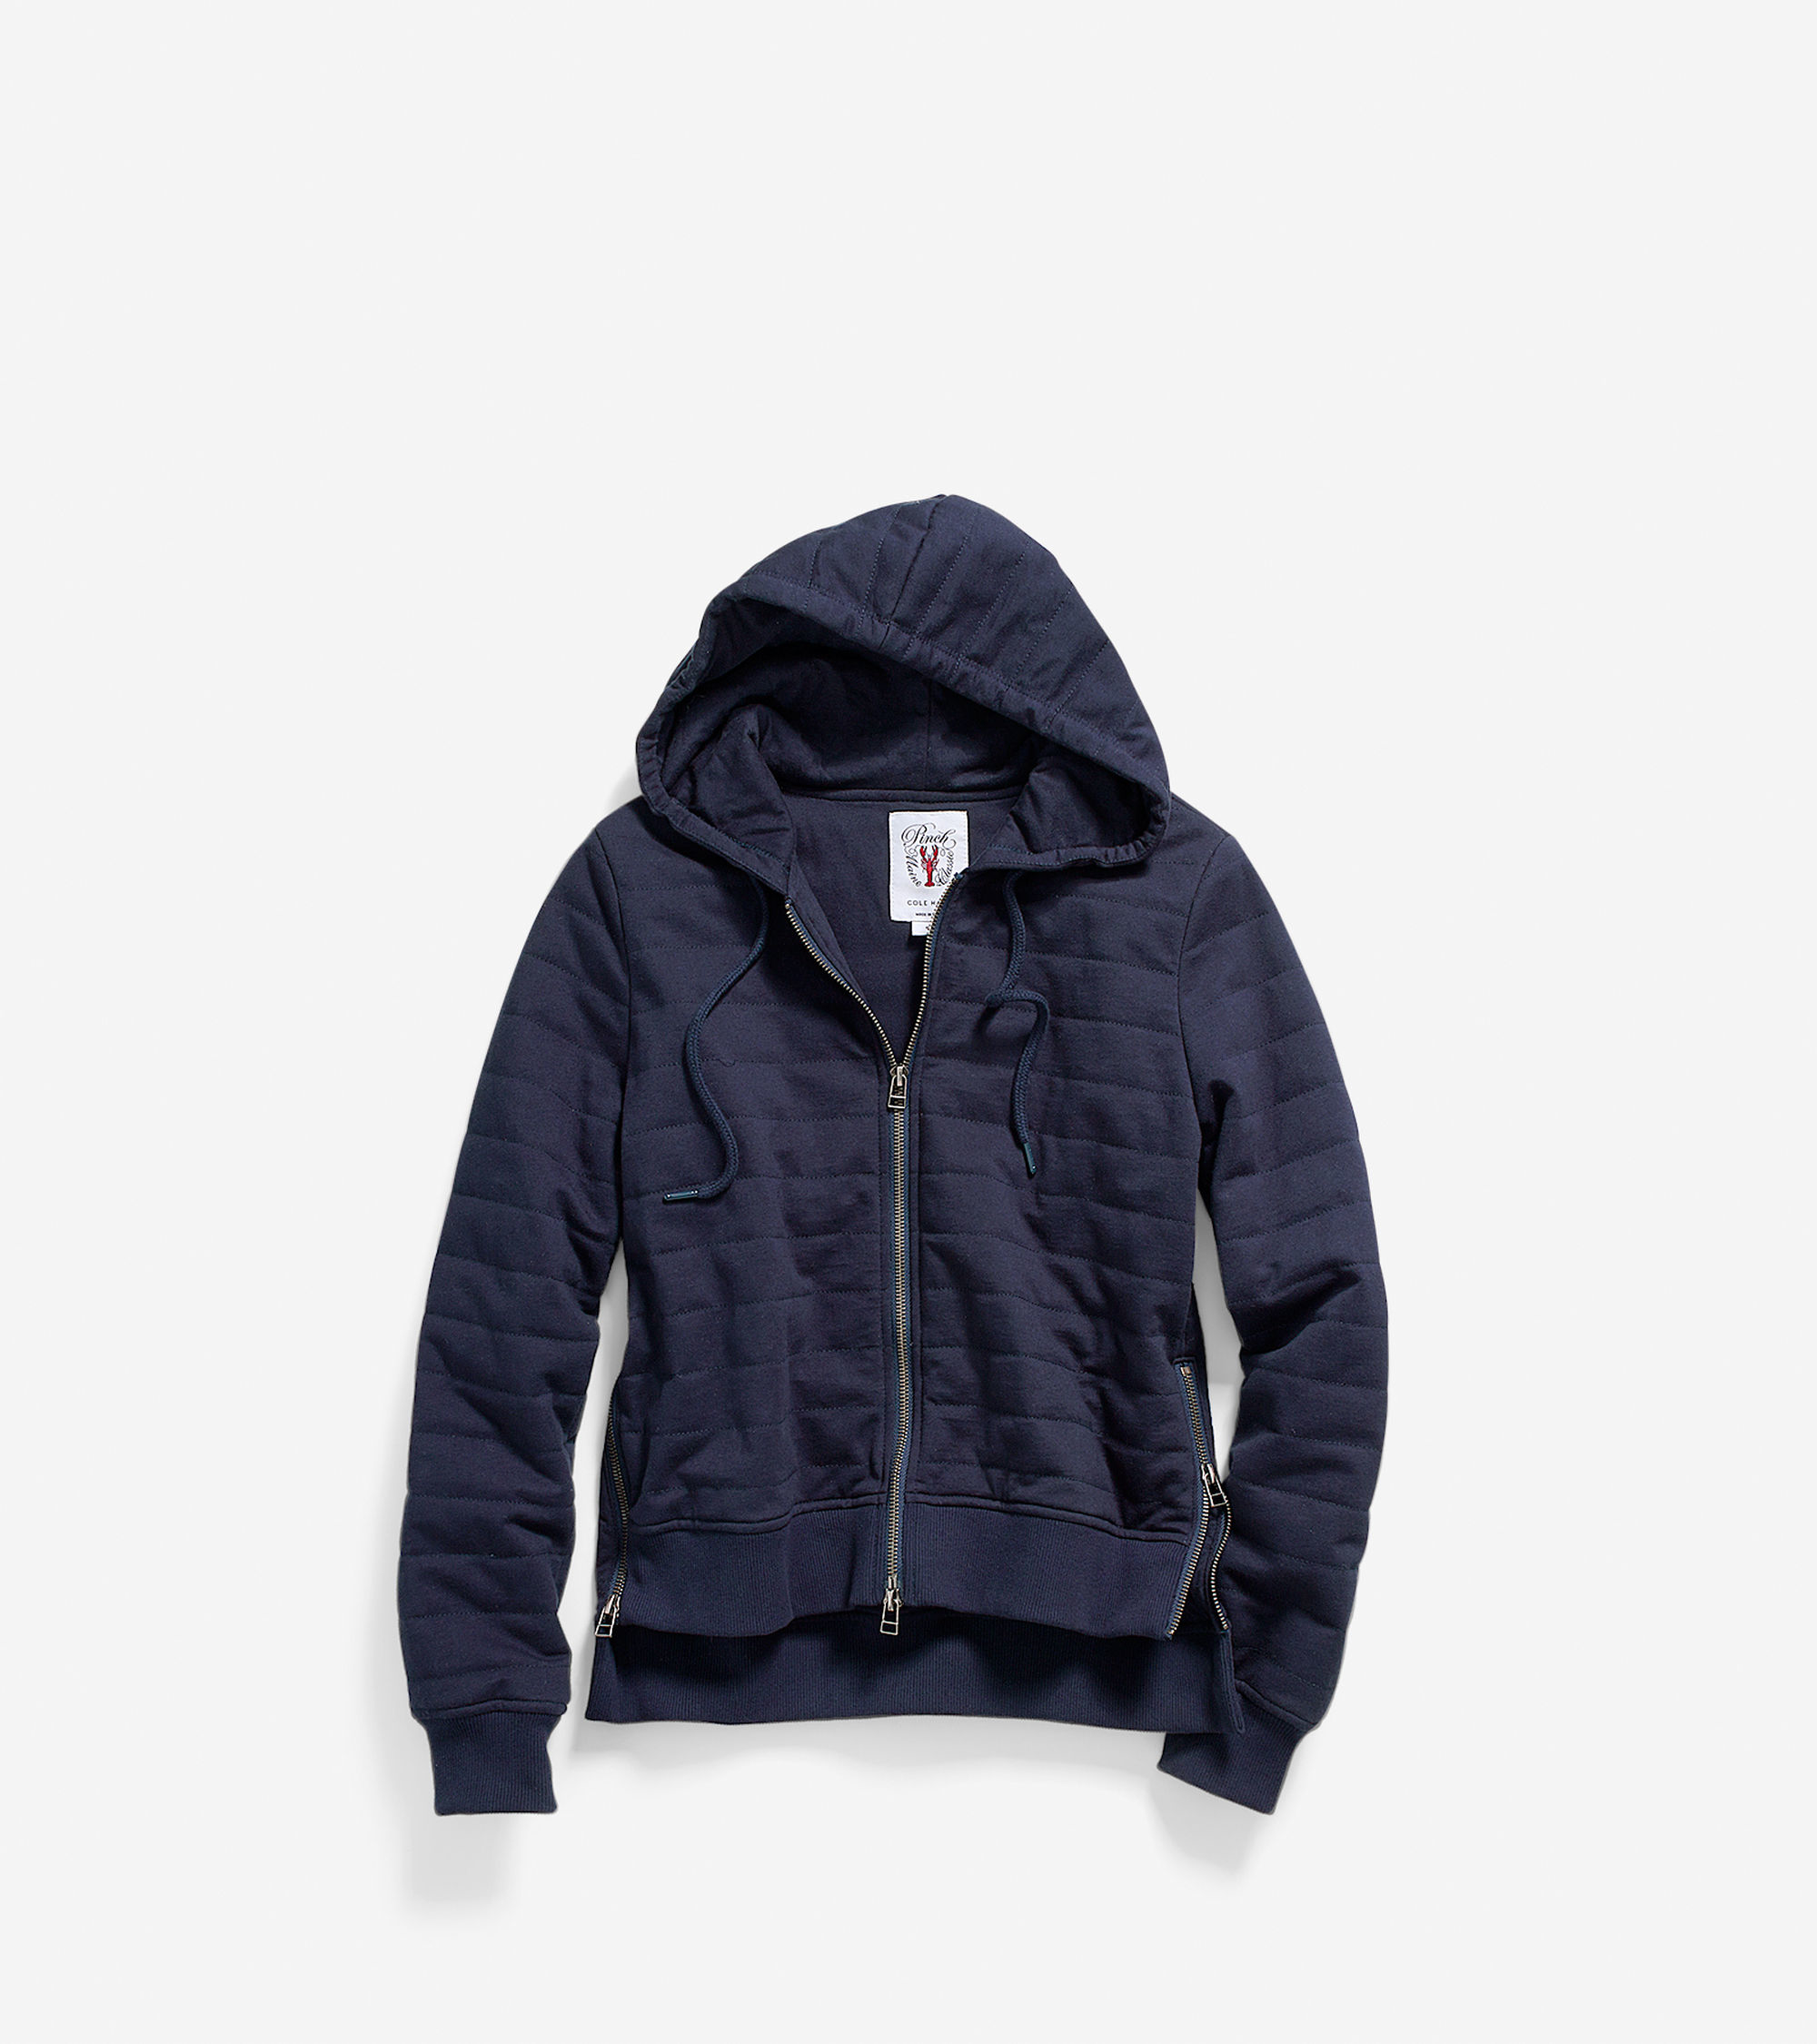 Cole haan Women's Pinch Quilted Front Zip Hoodie in Blue | Lyst